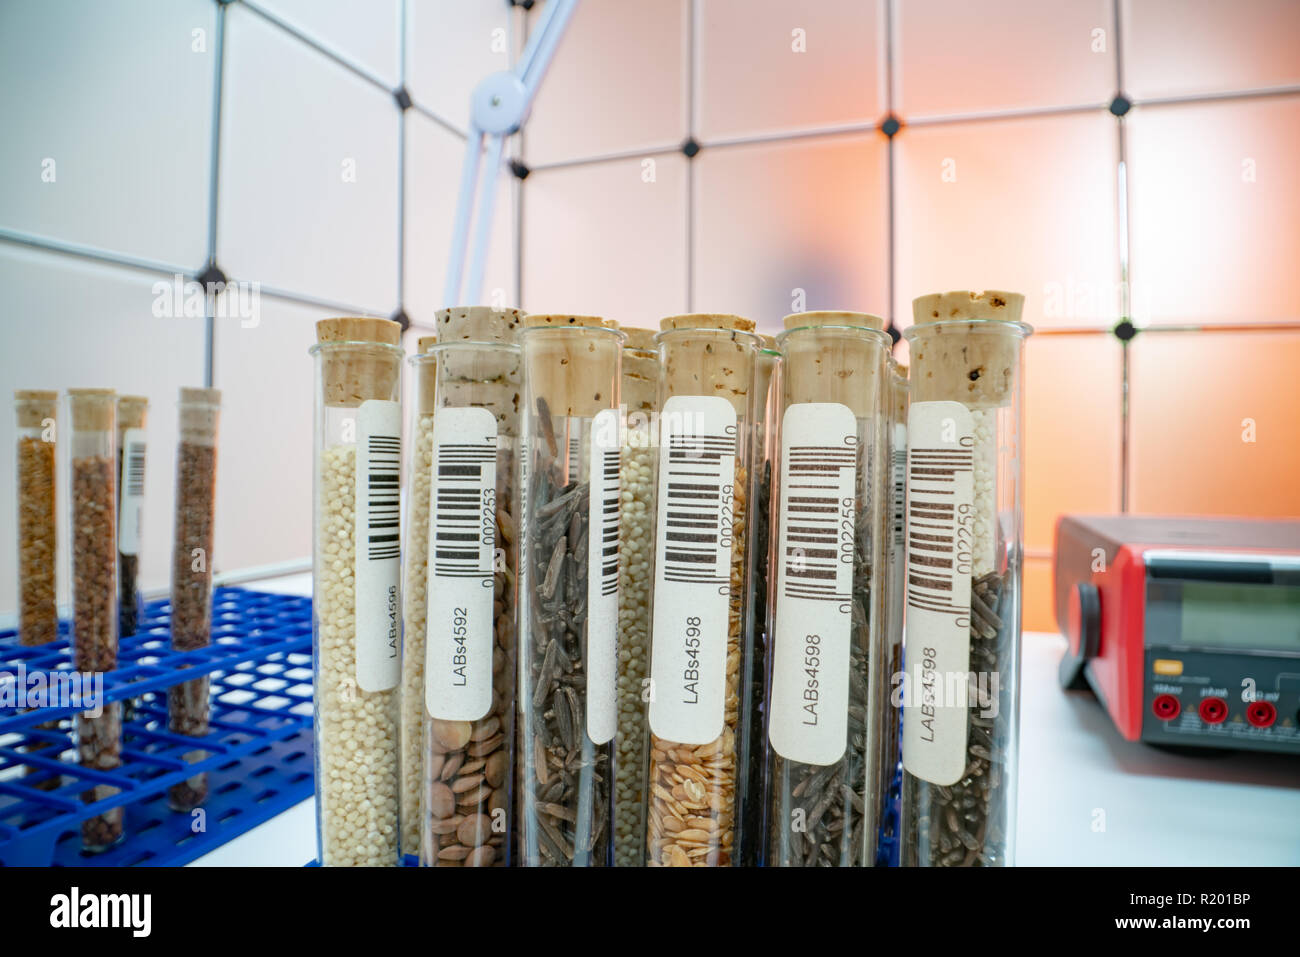 Gene banks plants.  Study of agricultural seeds in the lab - Stock Image